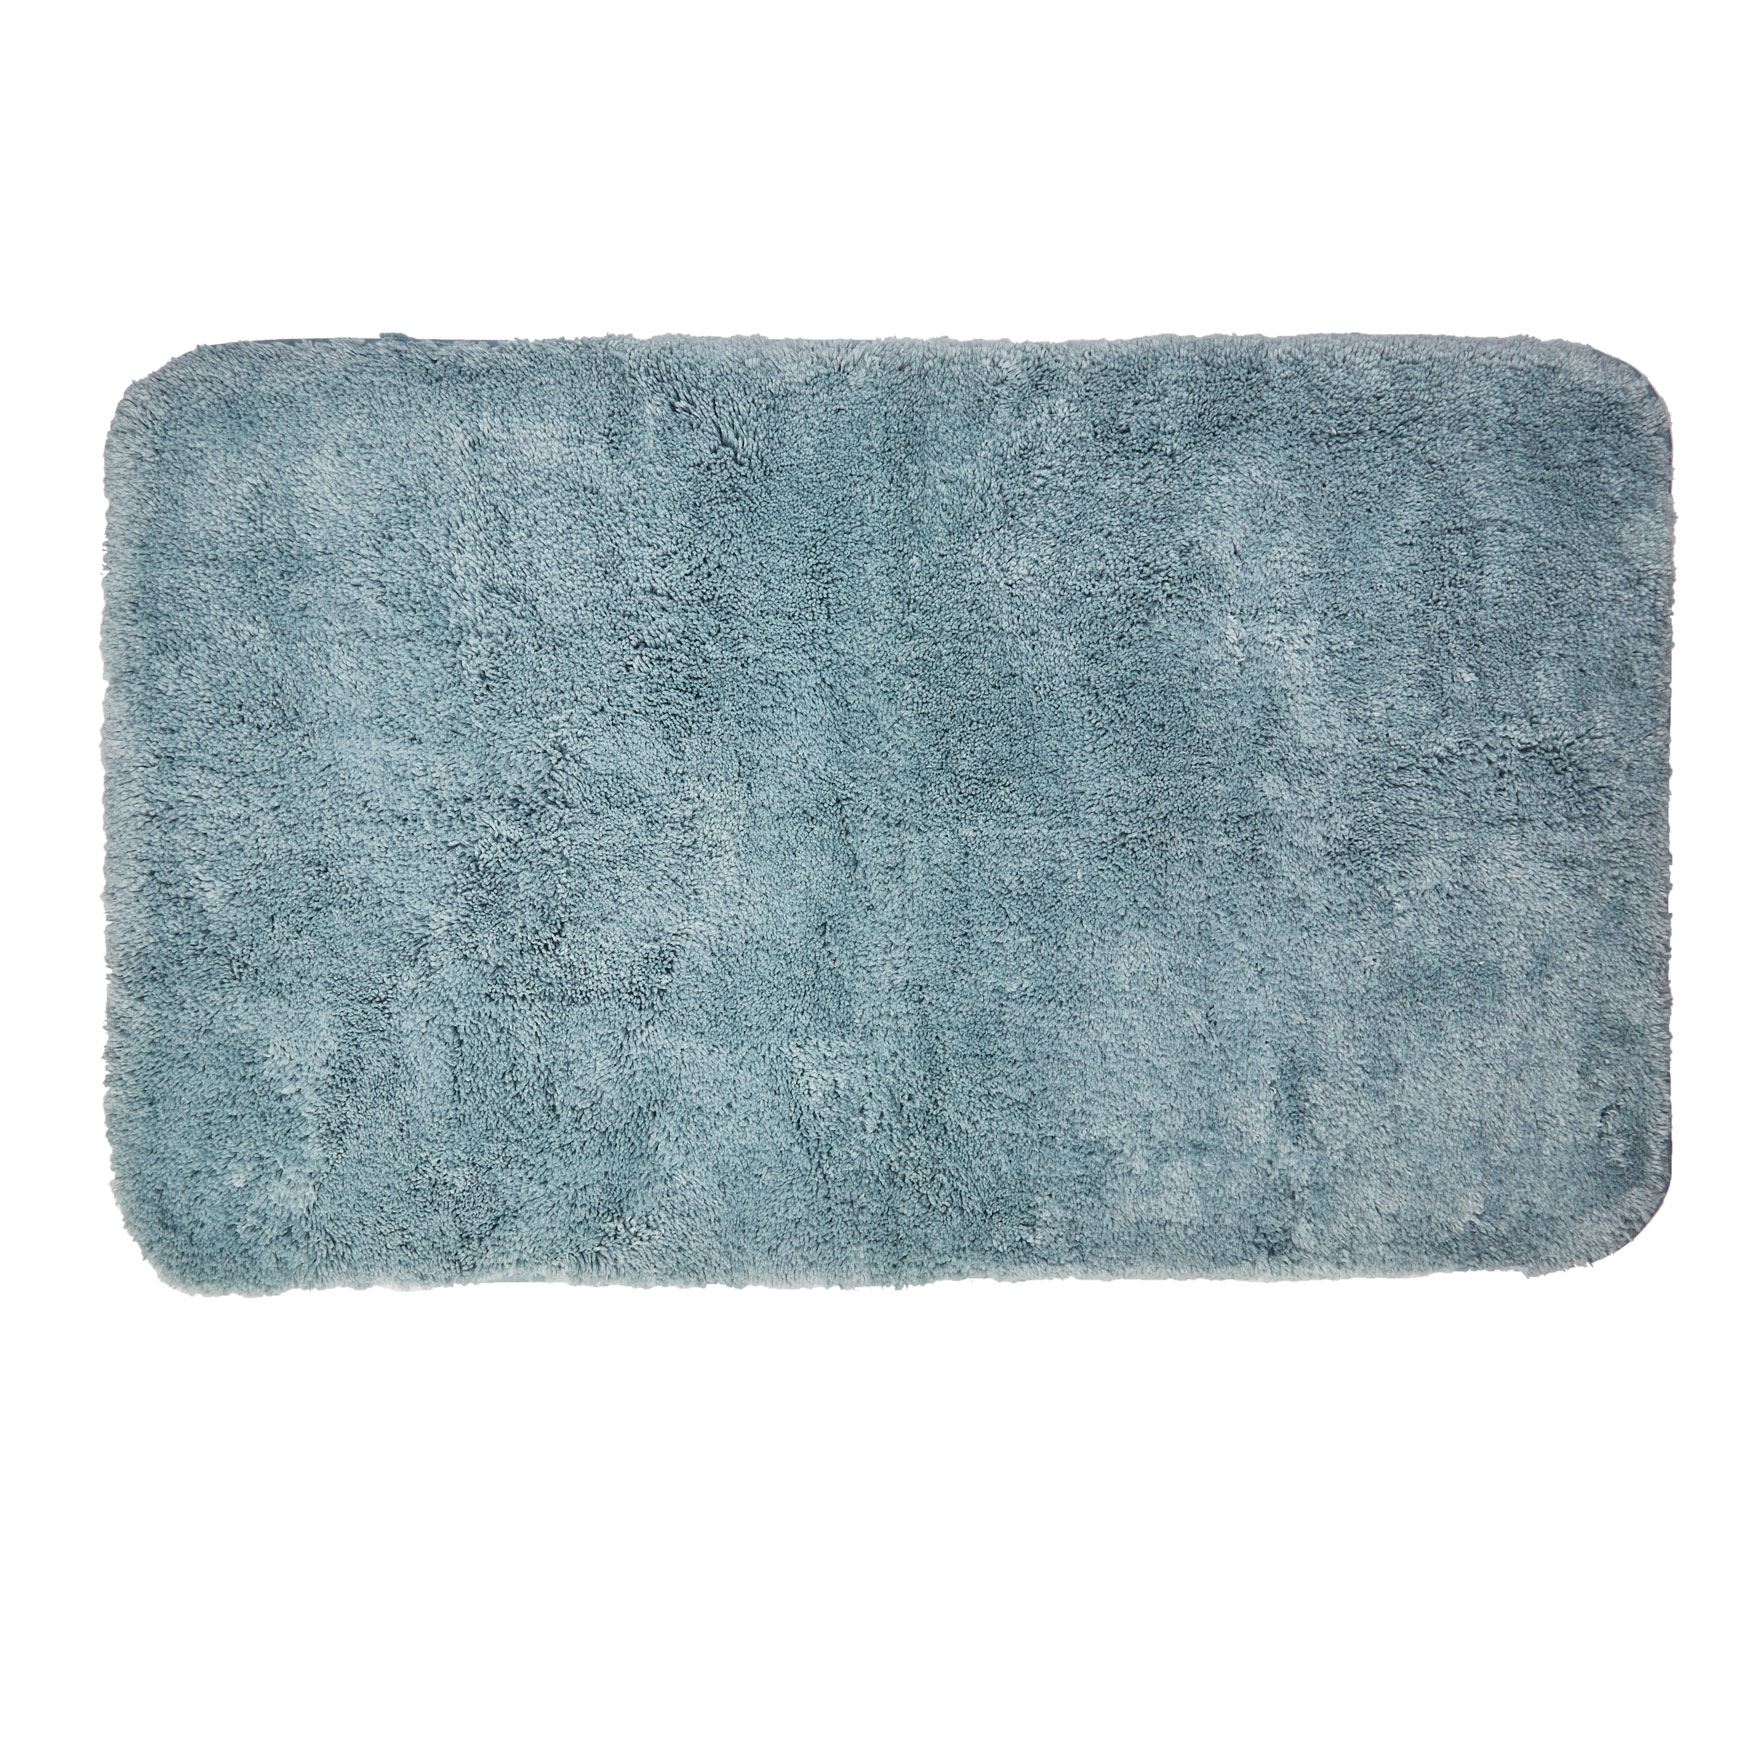 Corina 21' x 60' Bath Rug , CLOUD BLUE